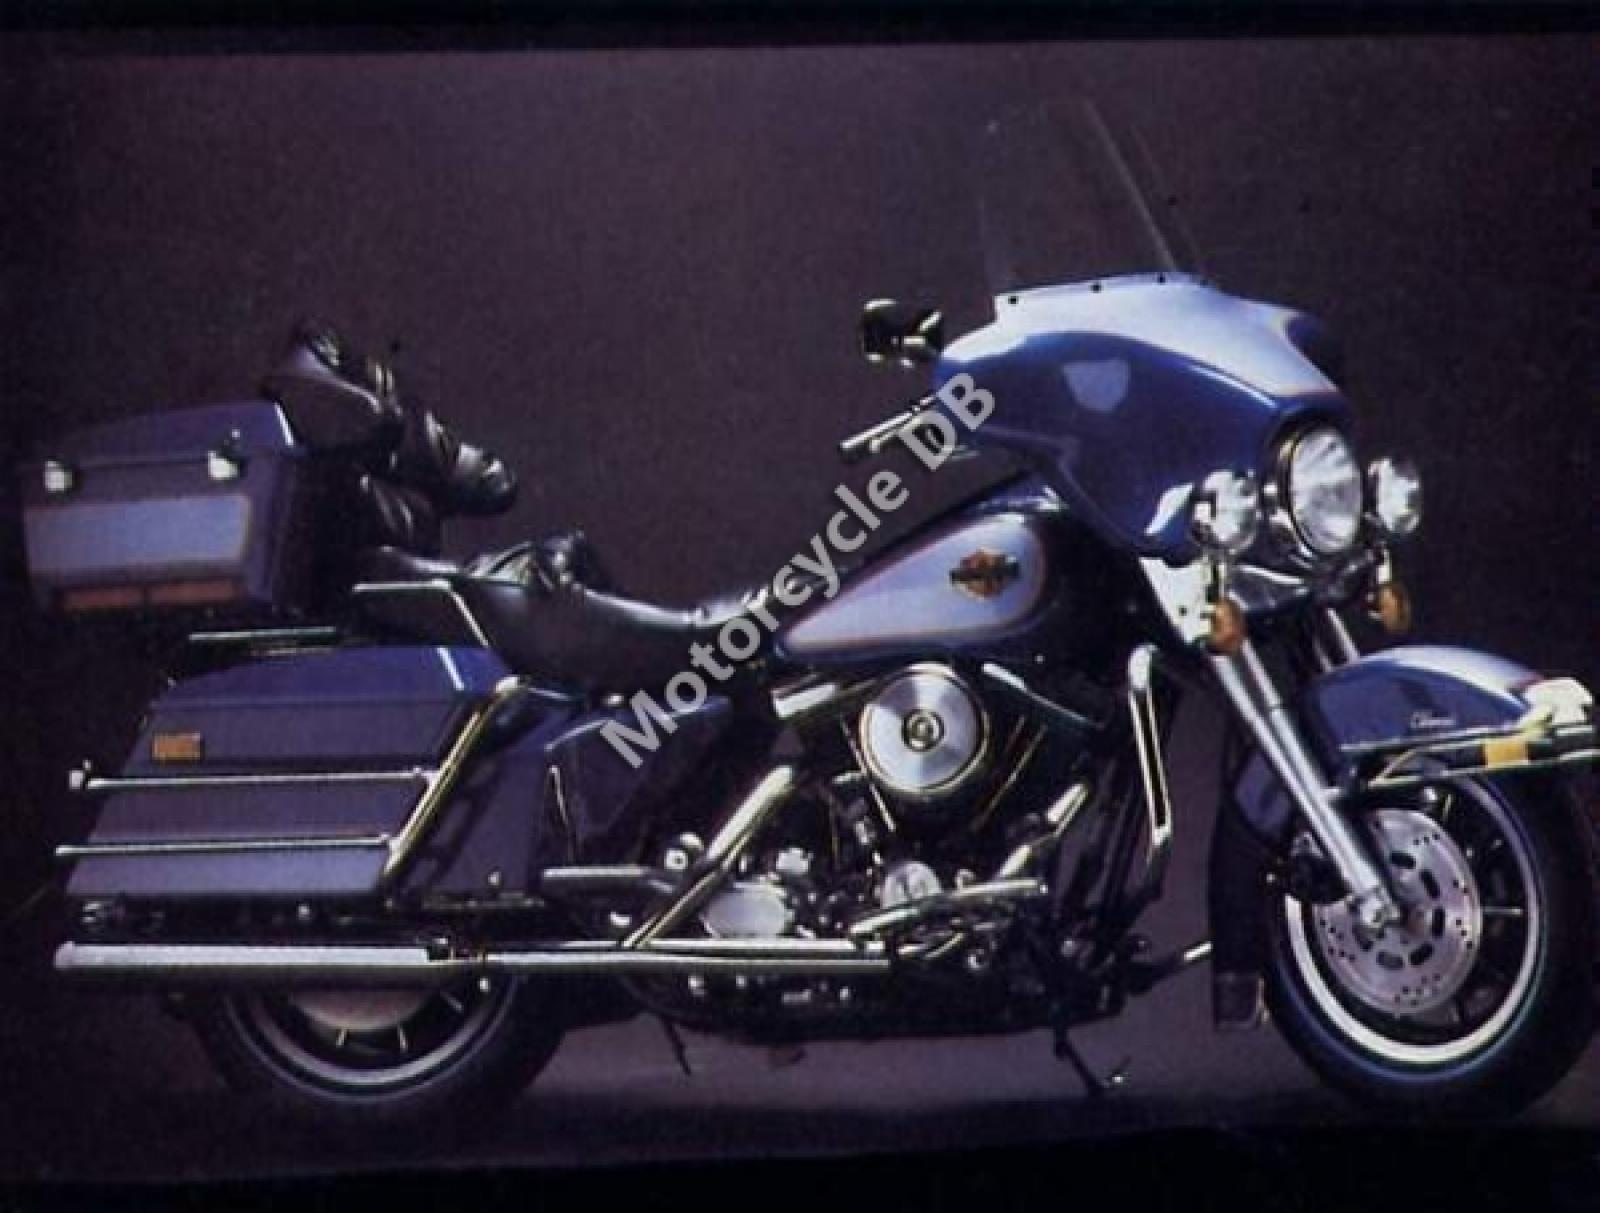 Harley-Davidson FLHTC 1340 Electra Glide Classic 1983 images #173498